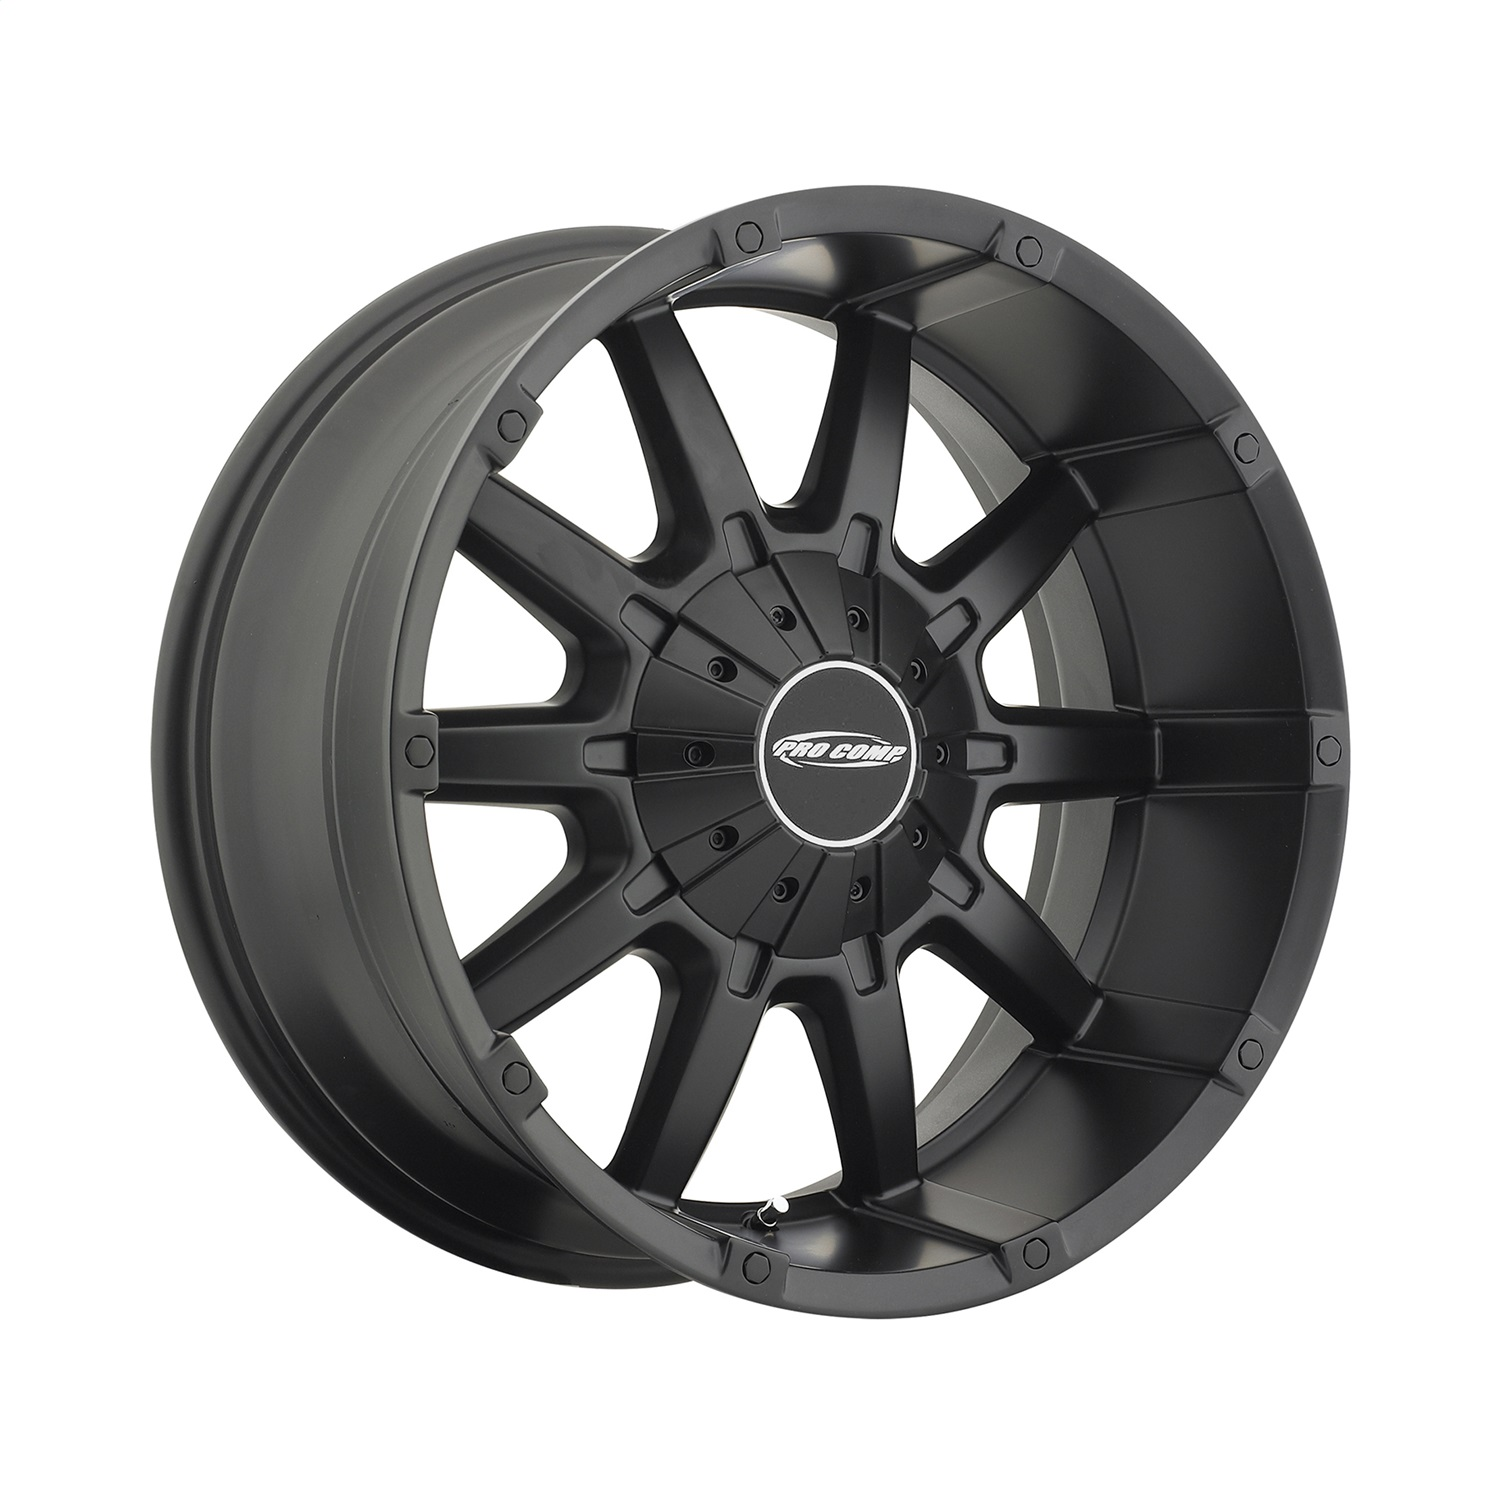 Pro Comp Alloy 5050-297045 Xtreme Alloys Series 5050 Black Finish